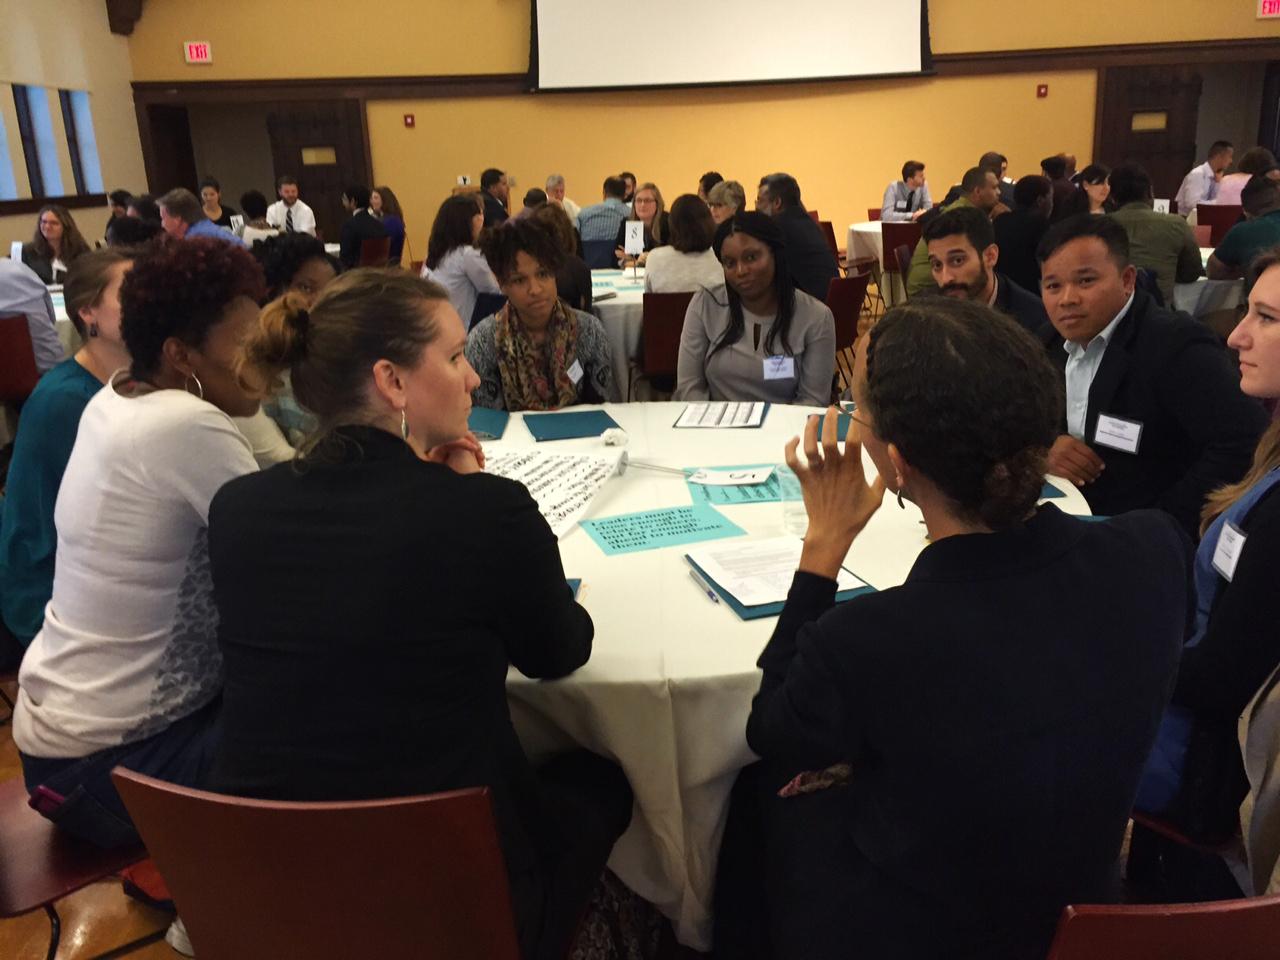 Assembled attendees at Institute for Nonprofit Management and Leadership event